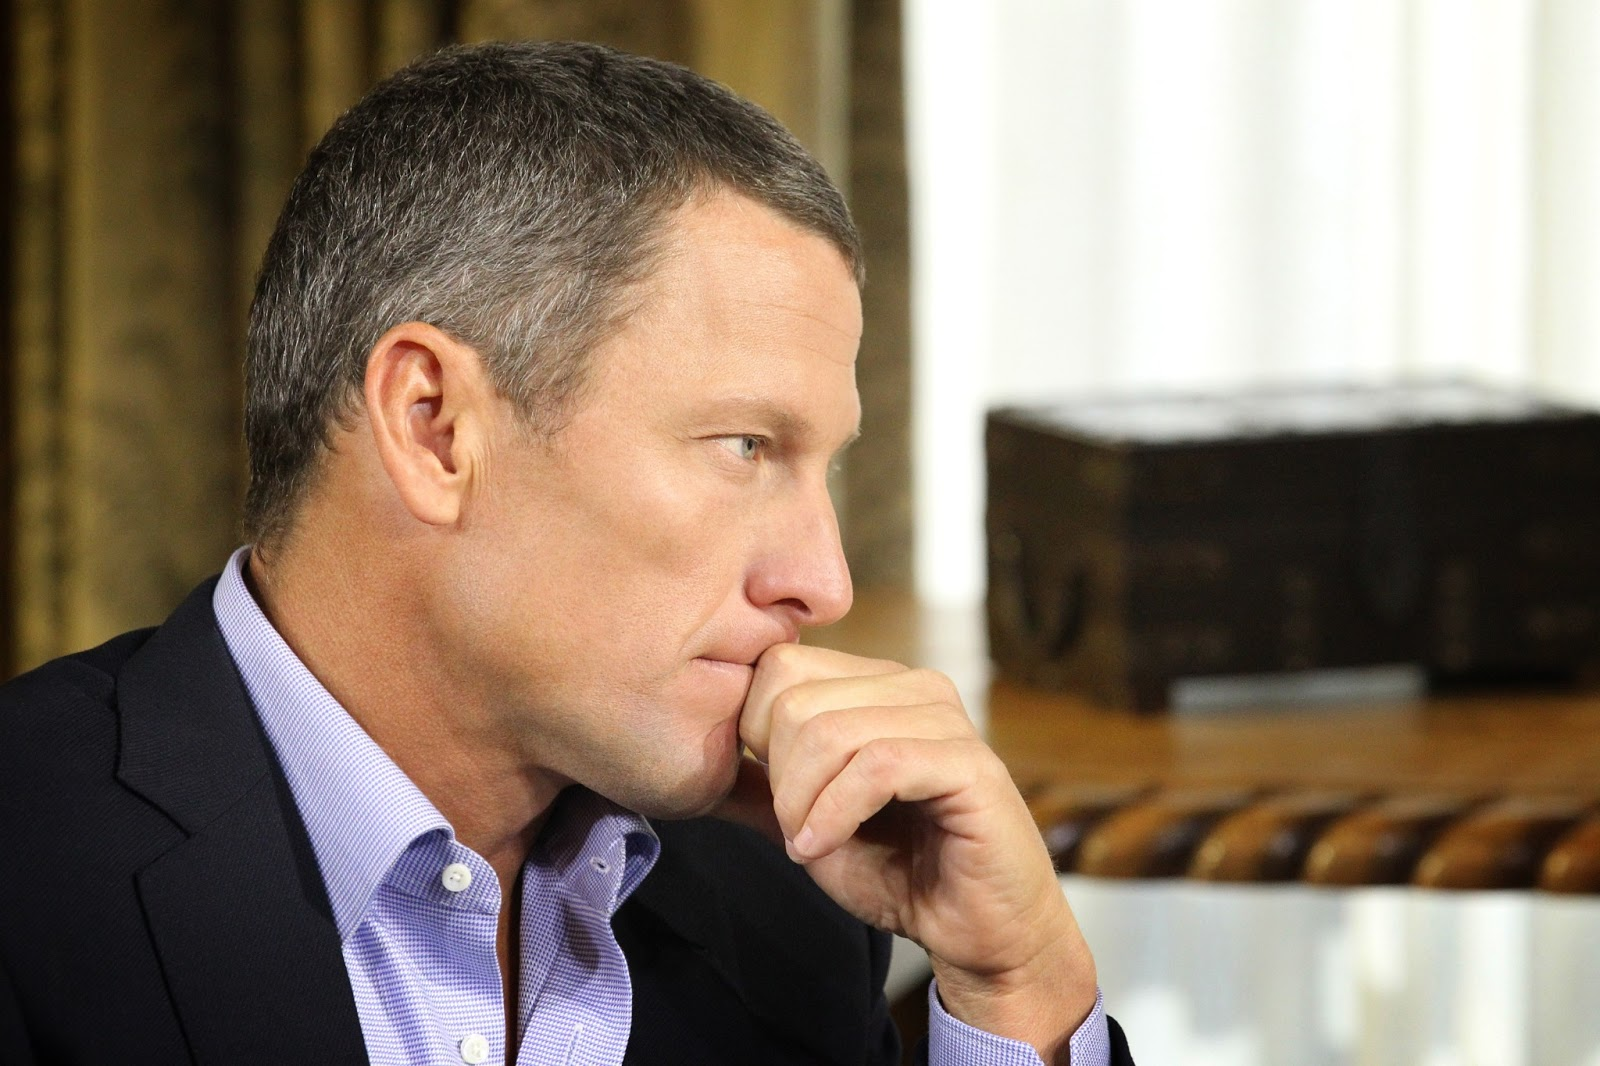 Lance Armstrong has admitted to doping through his Tour de France victories